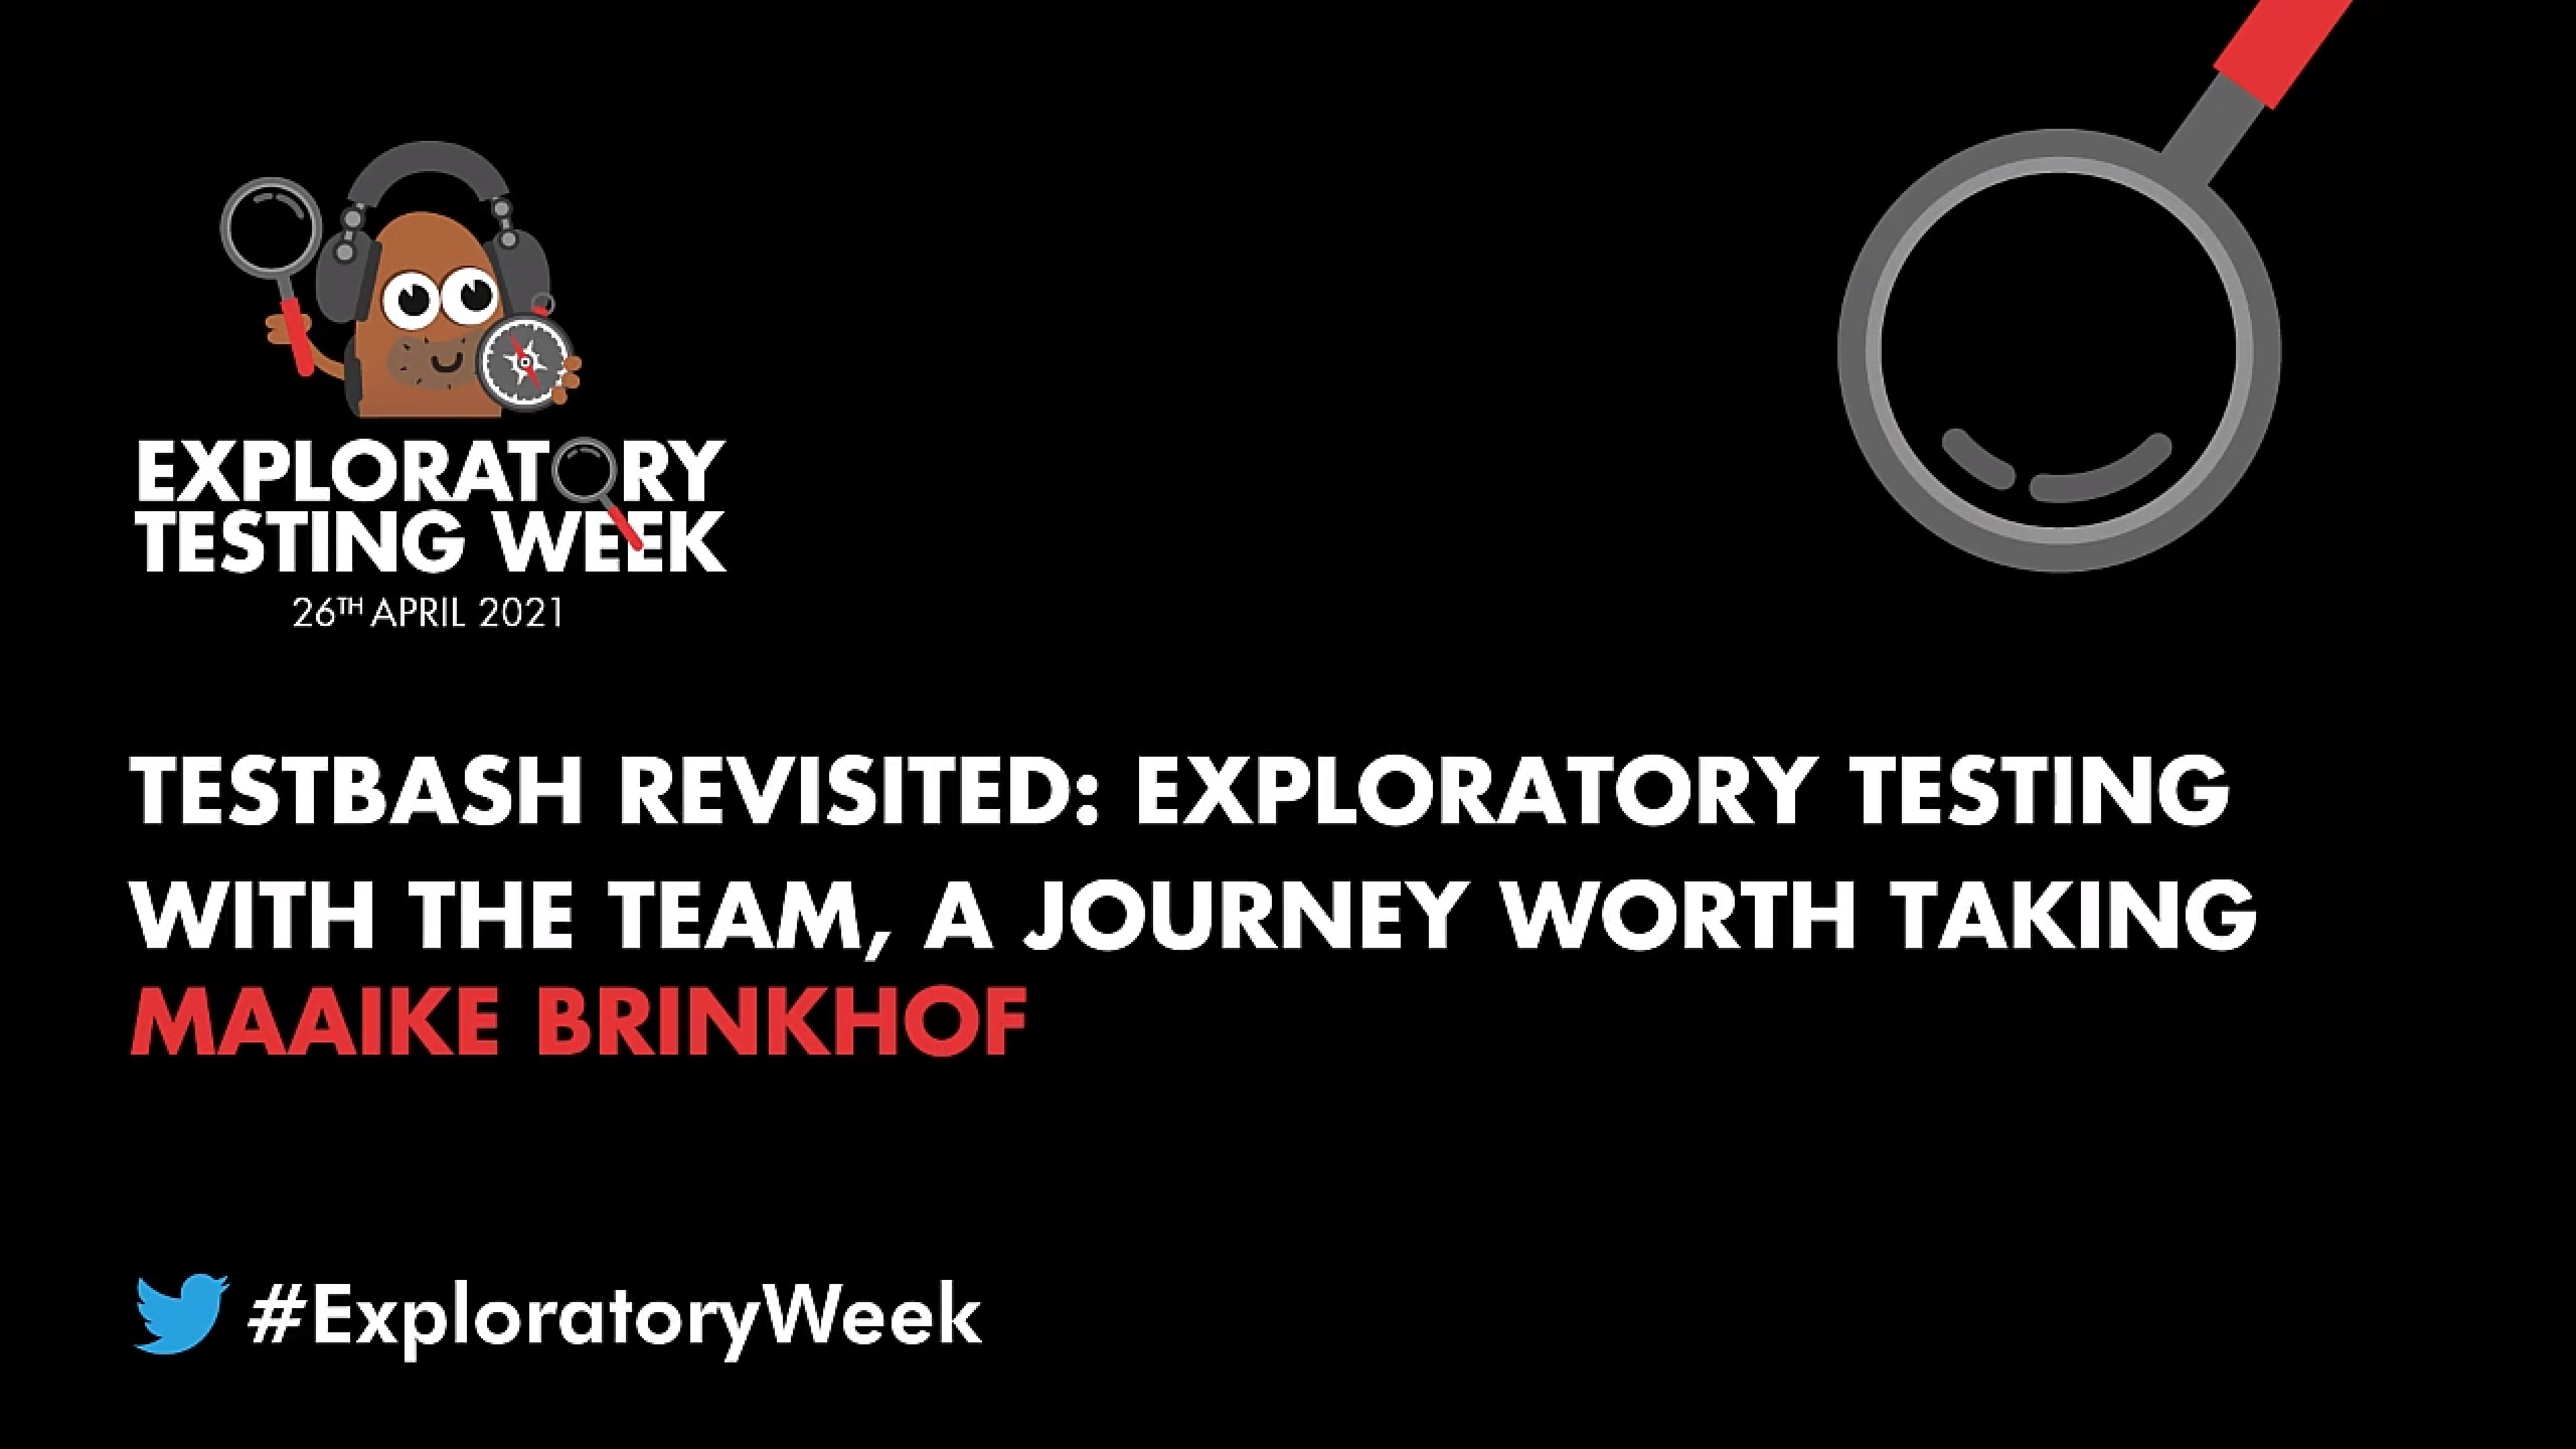 TestBash Revisited: Exploratory Testing with the Team, a Journey Worth Taking